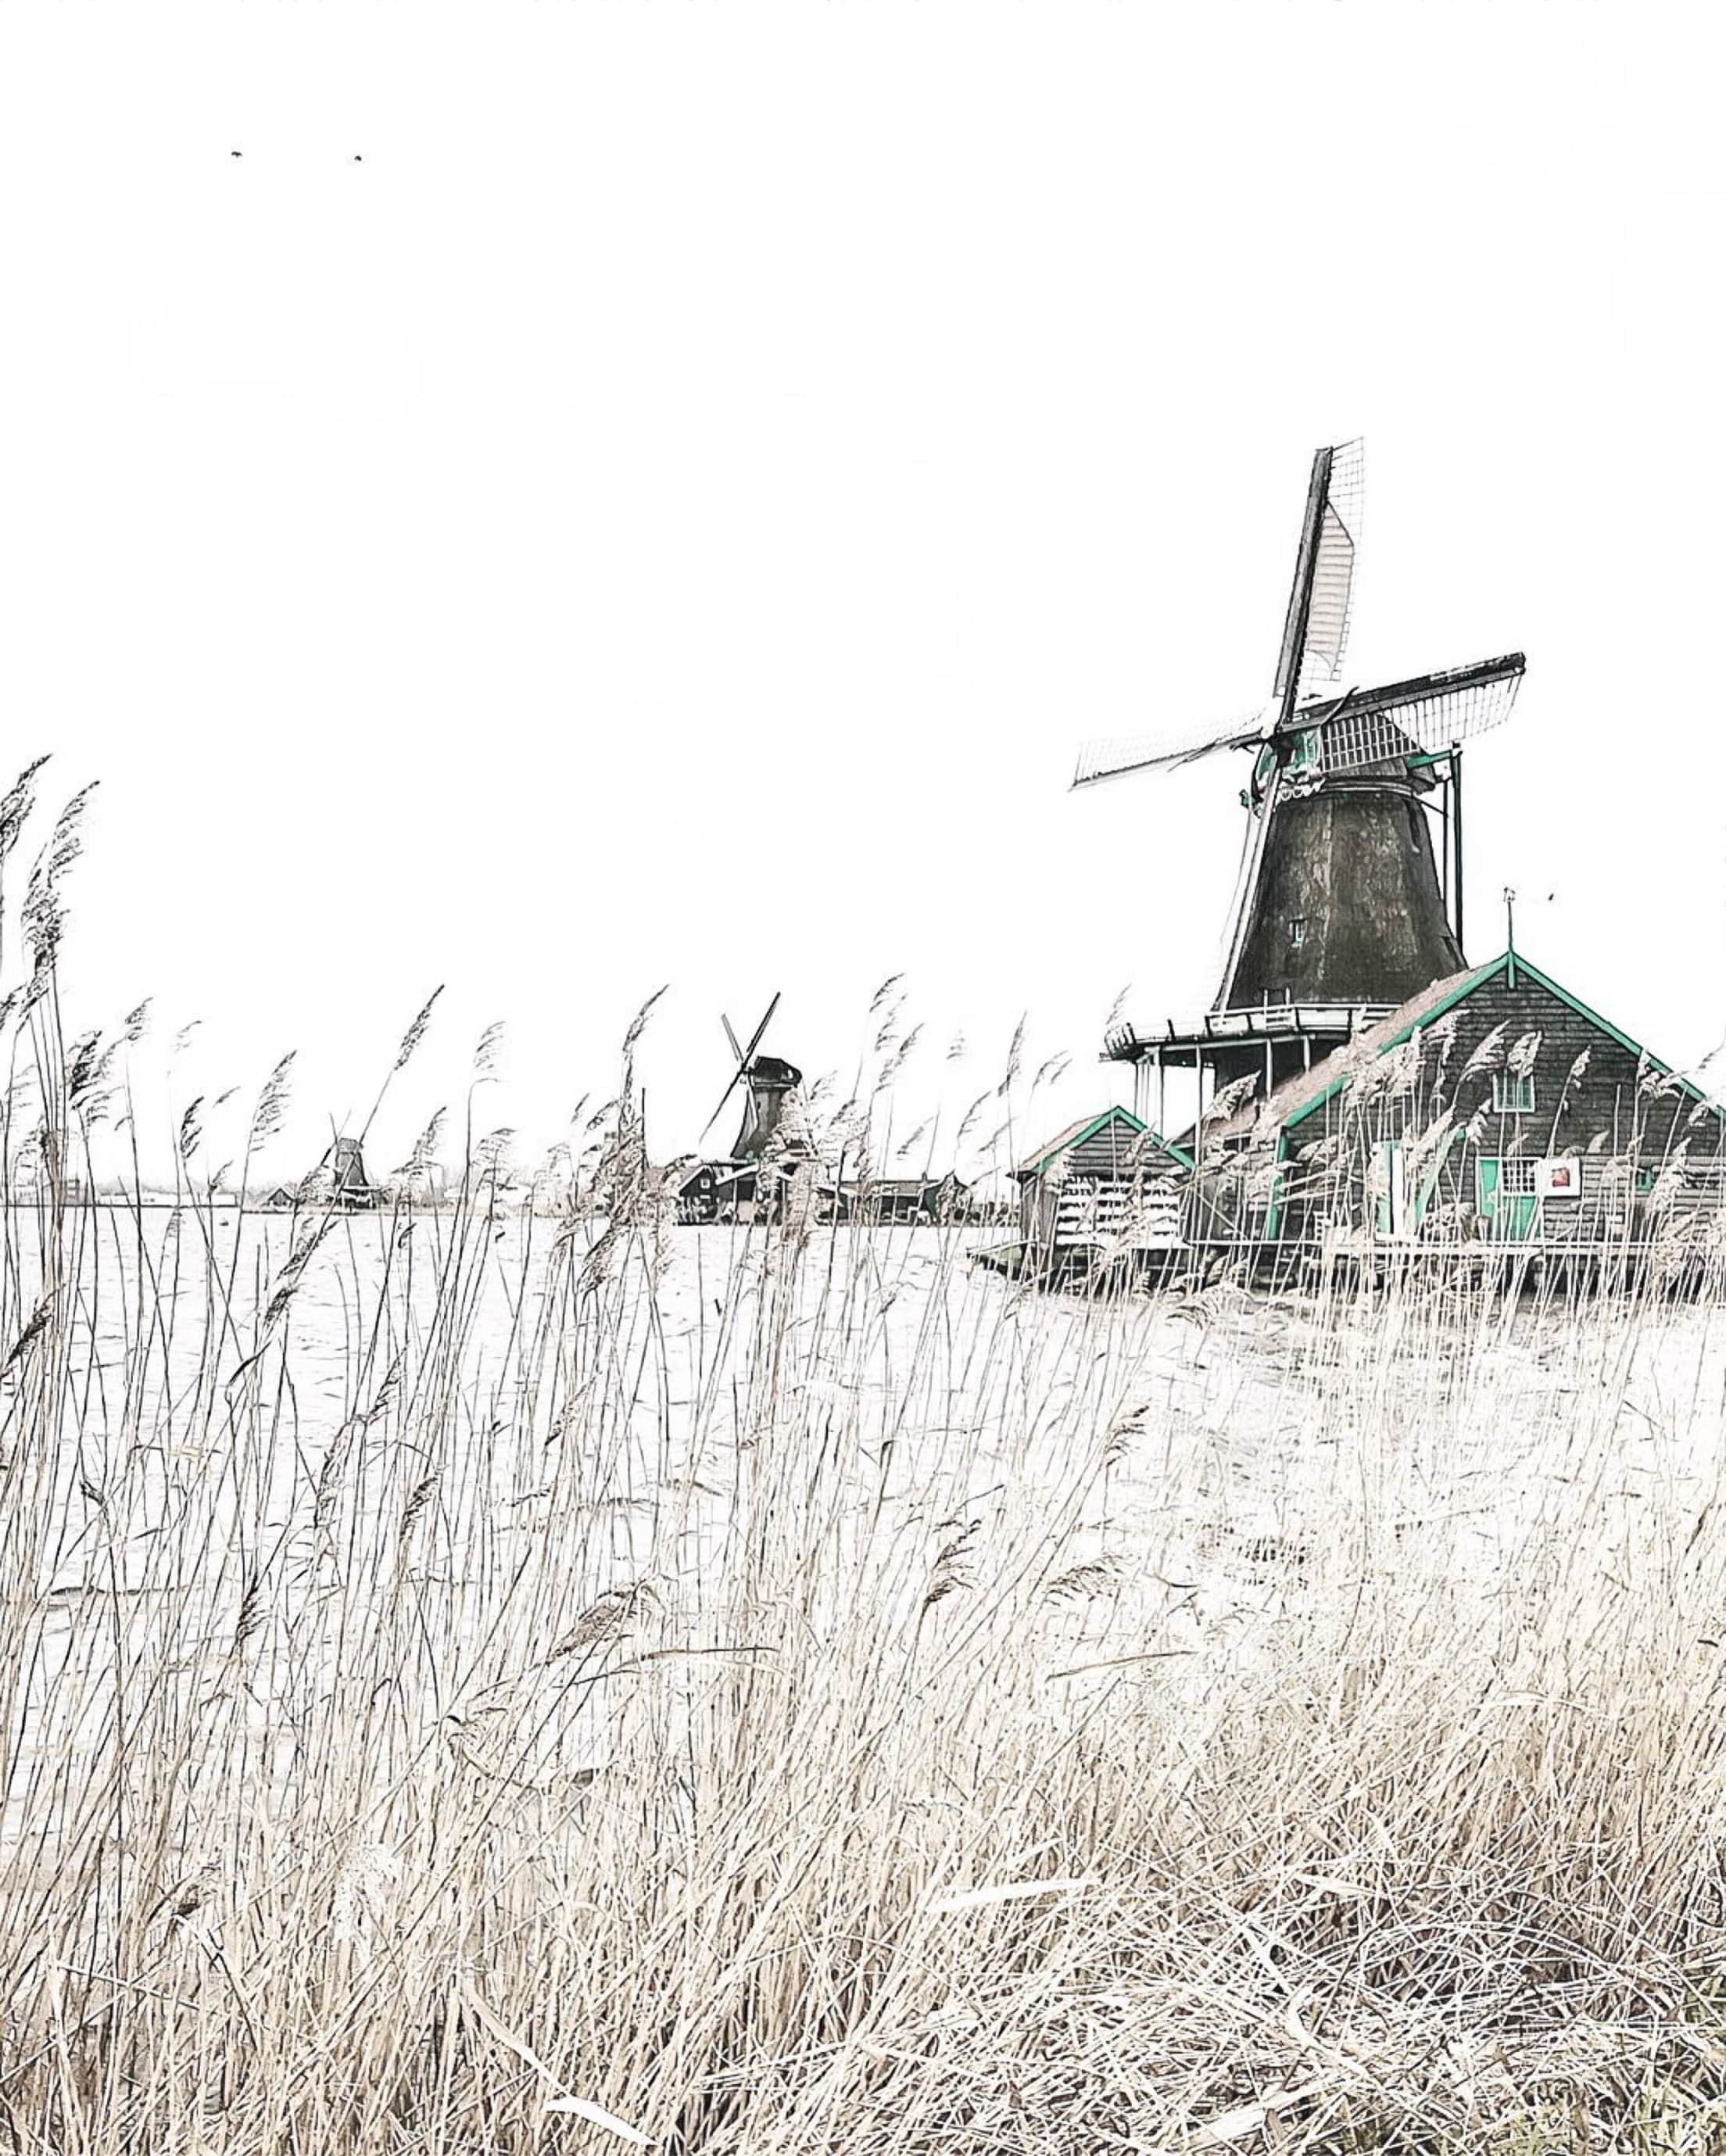 A year in The Netherlands. Through the eyes of an expat.